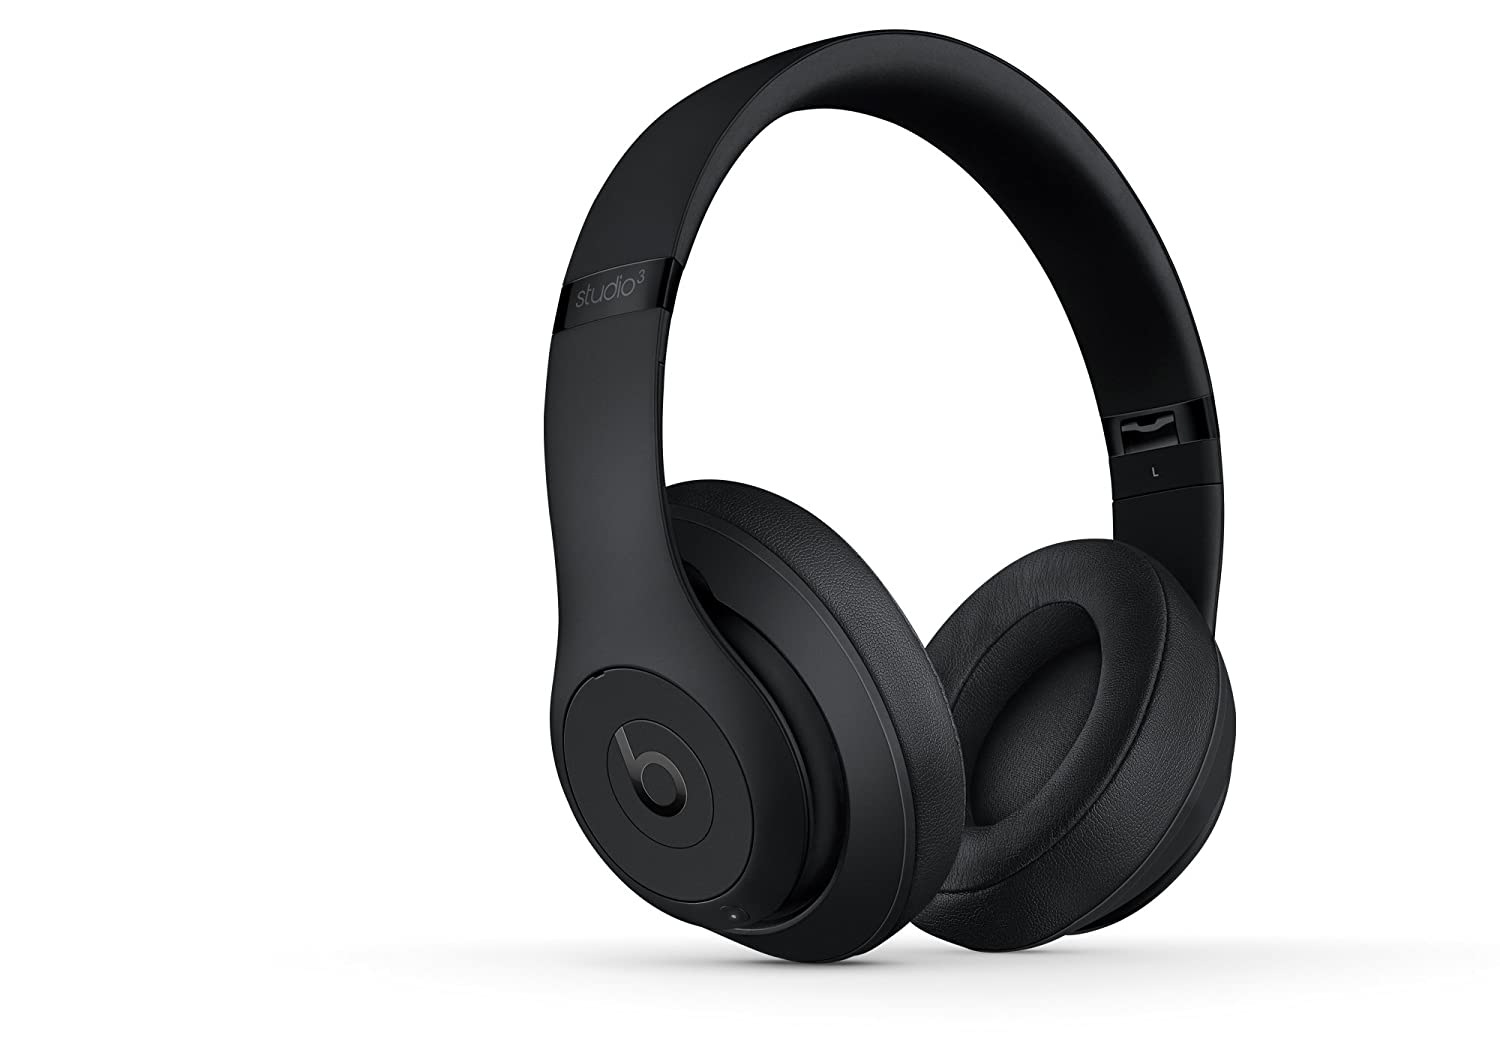 Beats Studio3 Wireless Headphone Black Friday Deal 2019